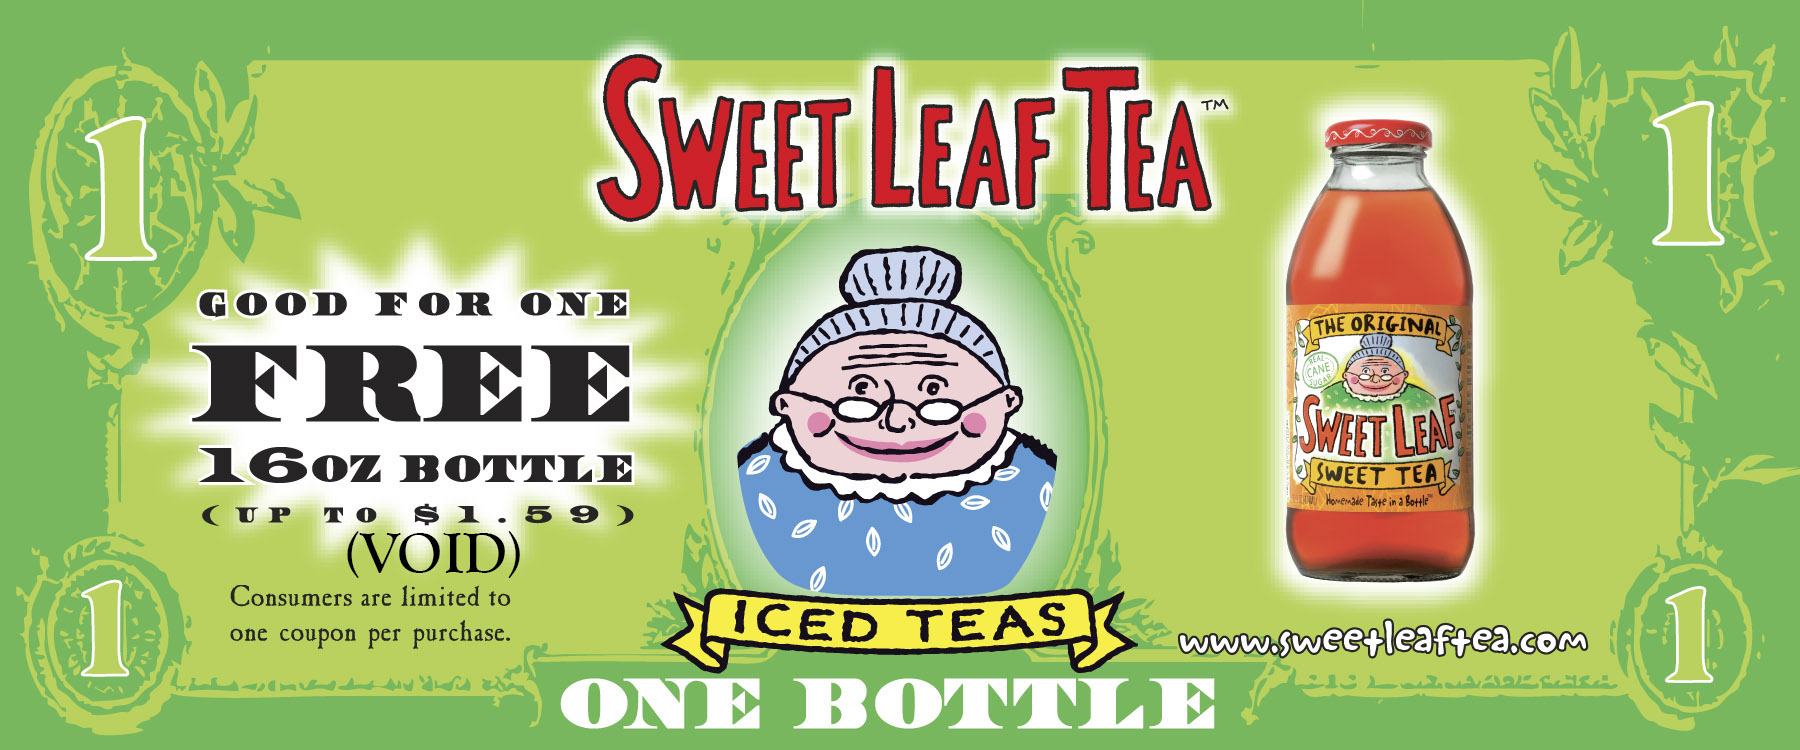 Sweet Leaf VIP coupon-front